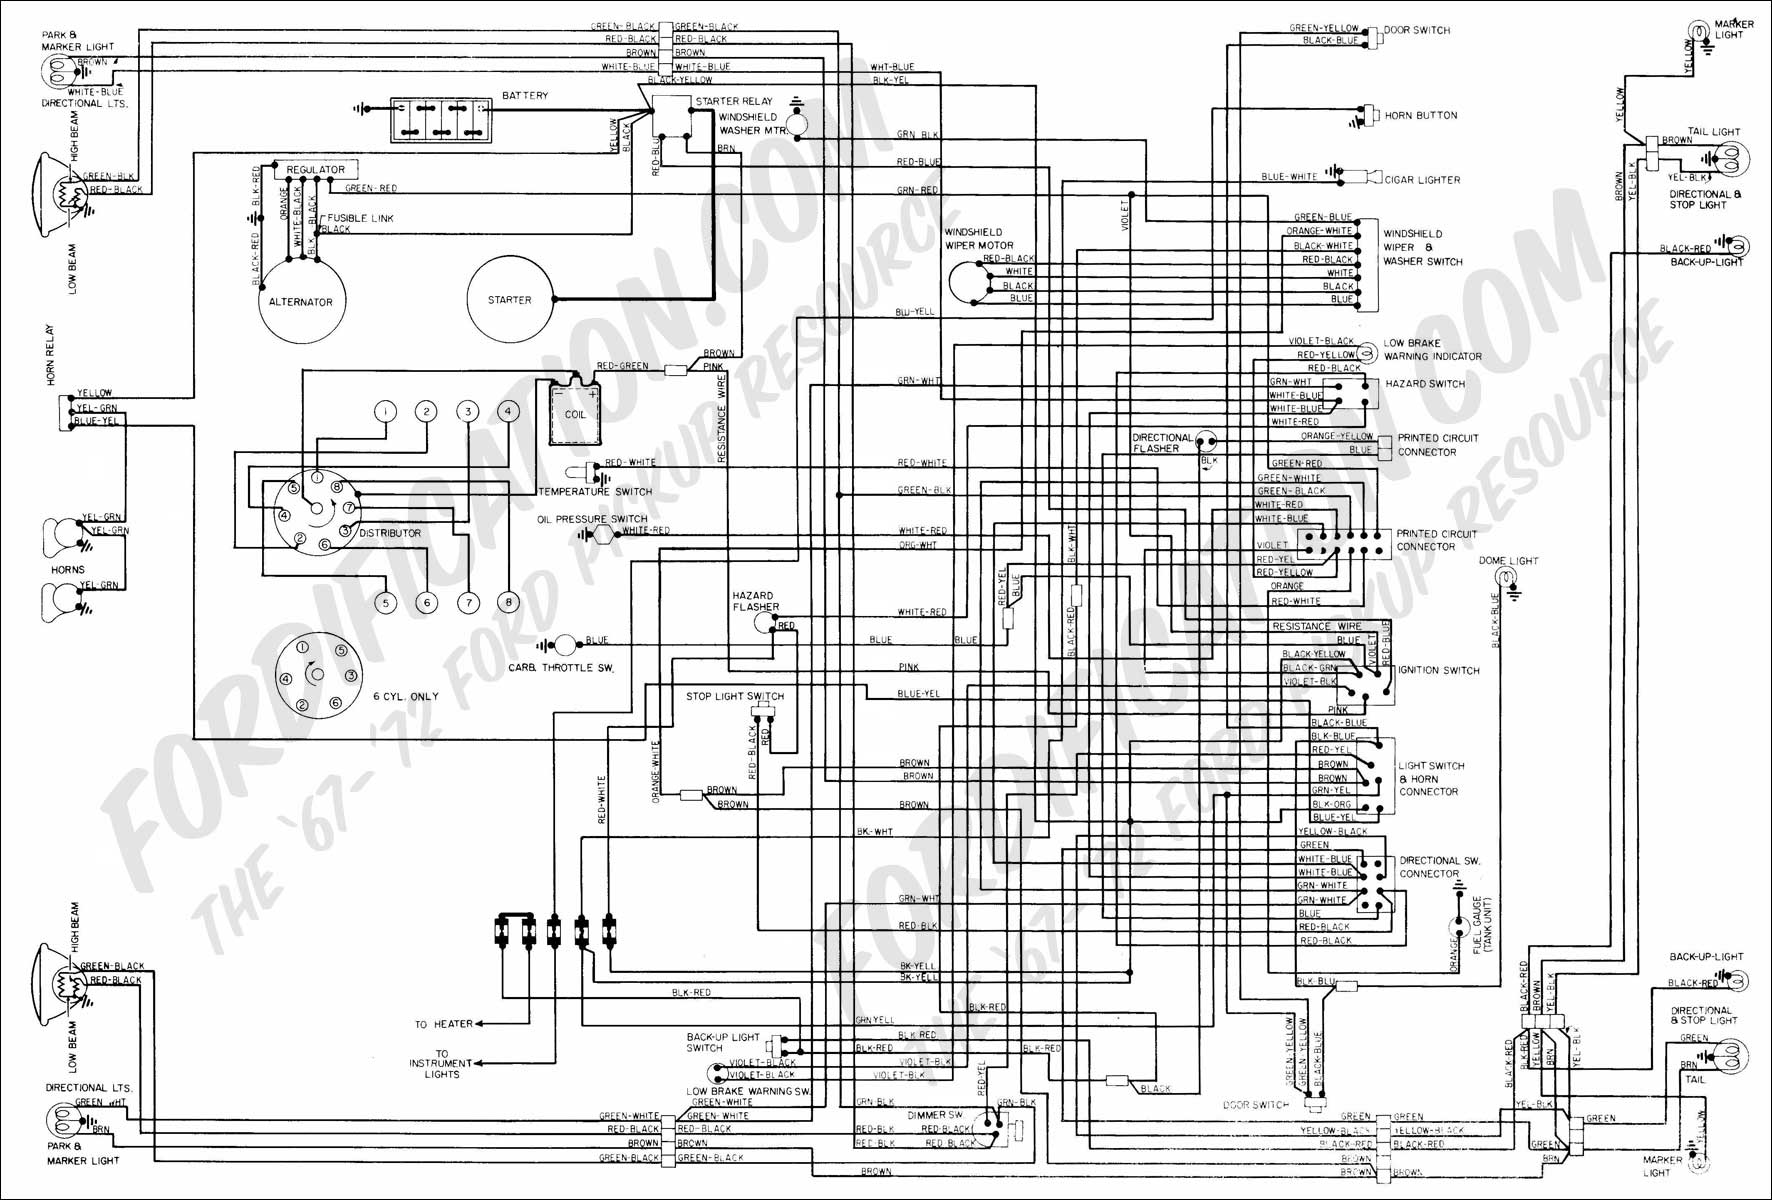 wiring diagram 72_quick ford focus 2008 wiring diagram pdf efcaviation com 2007 f250 wiring diagram at edmiracle.co